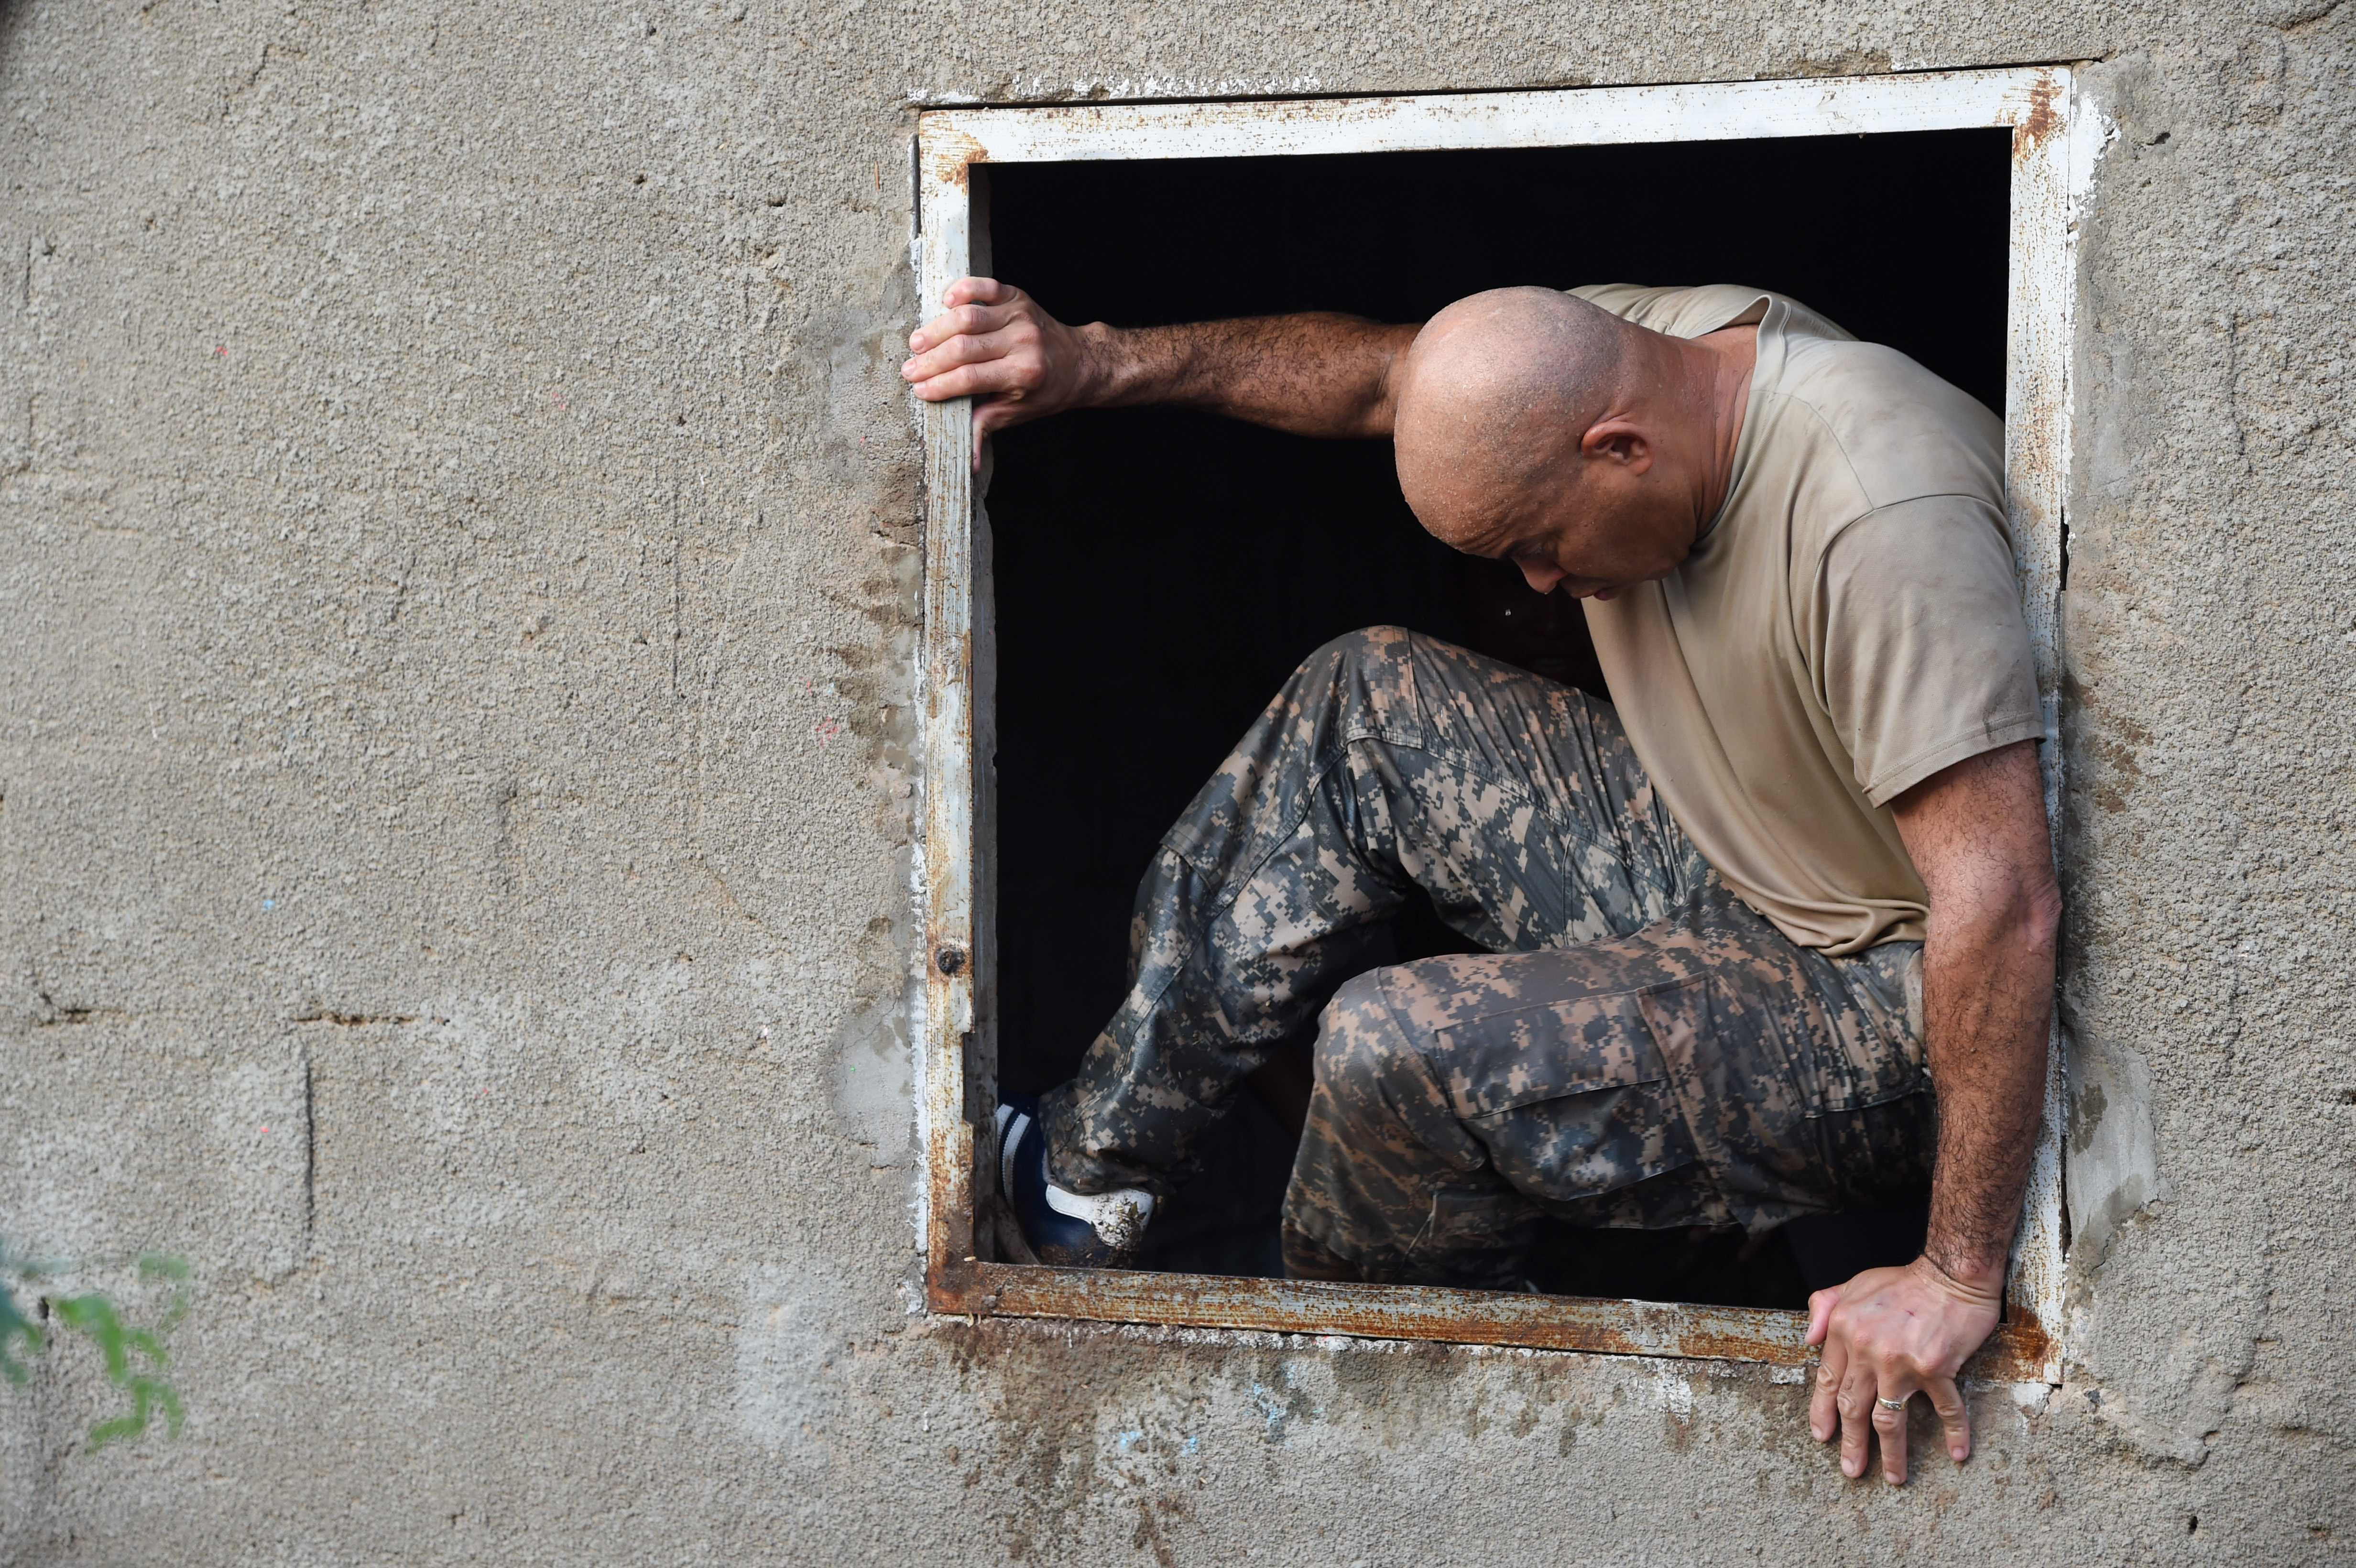 U.S. Army Sgt. Maj. Rodger Campbell, Combined Joint Task Force-Horn of Africa Civil Affairs, jumps through a window obstacle during a mud run hosted by the French military, Nov. 6, 2016, in Djibouti, Djibouti. The event allowed coalition forces from French, Japanese, and American teams to interact and build camaraderie while navigating a five kilometer course. The French 5th Marine Regiment team took first place. (U.S. Air Force photo by Staff Sgt. Penny Snoozy)